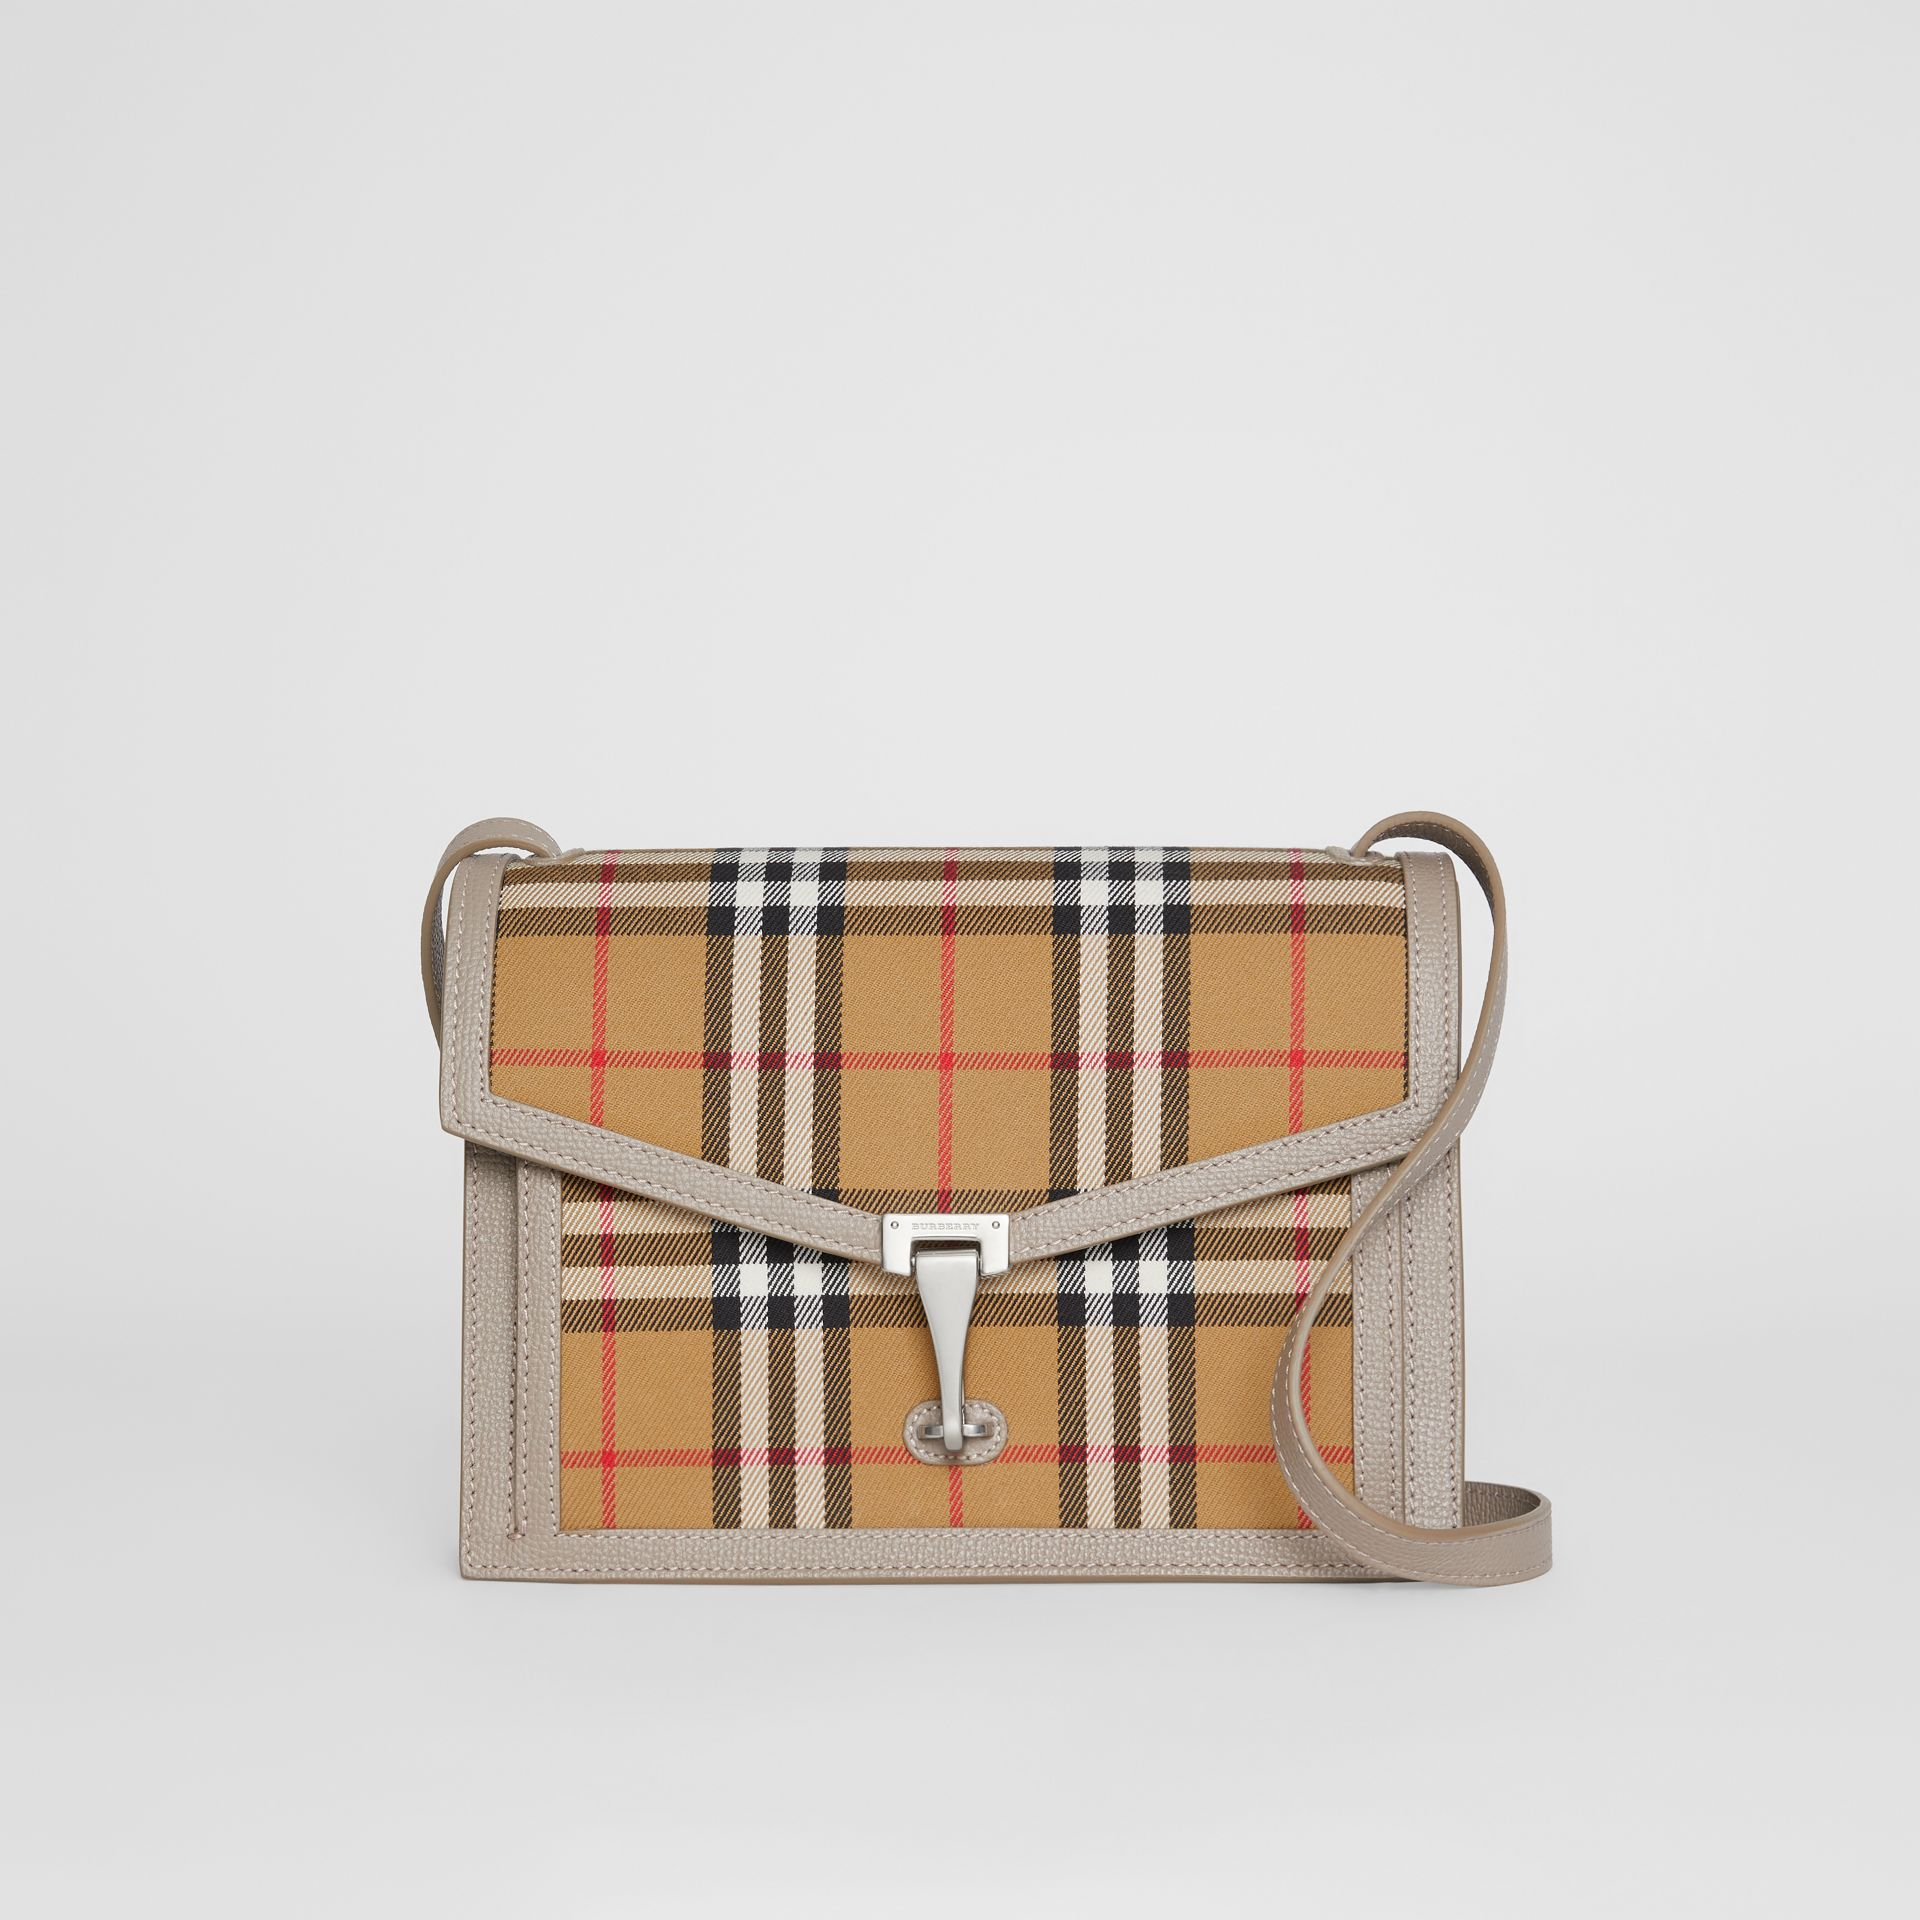 Small Vintage Check and Leather Crossbody Bag in Taupe Brown - Women | Burberry - gallery image 0